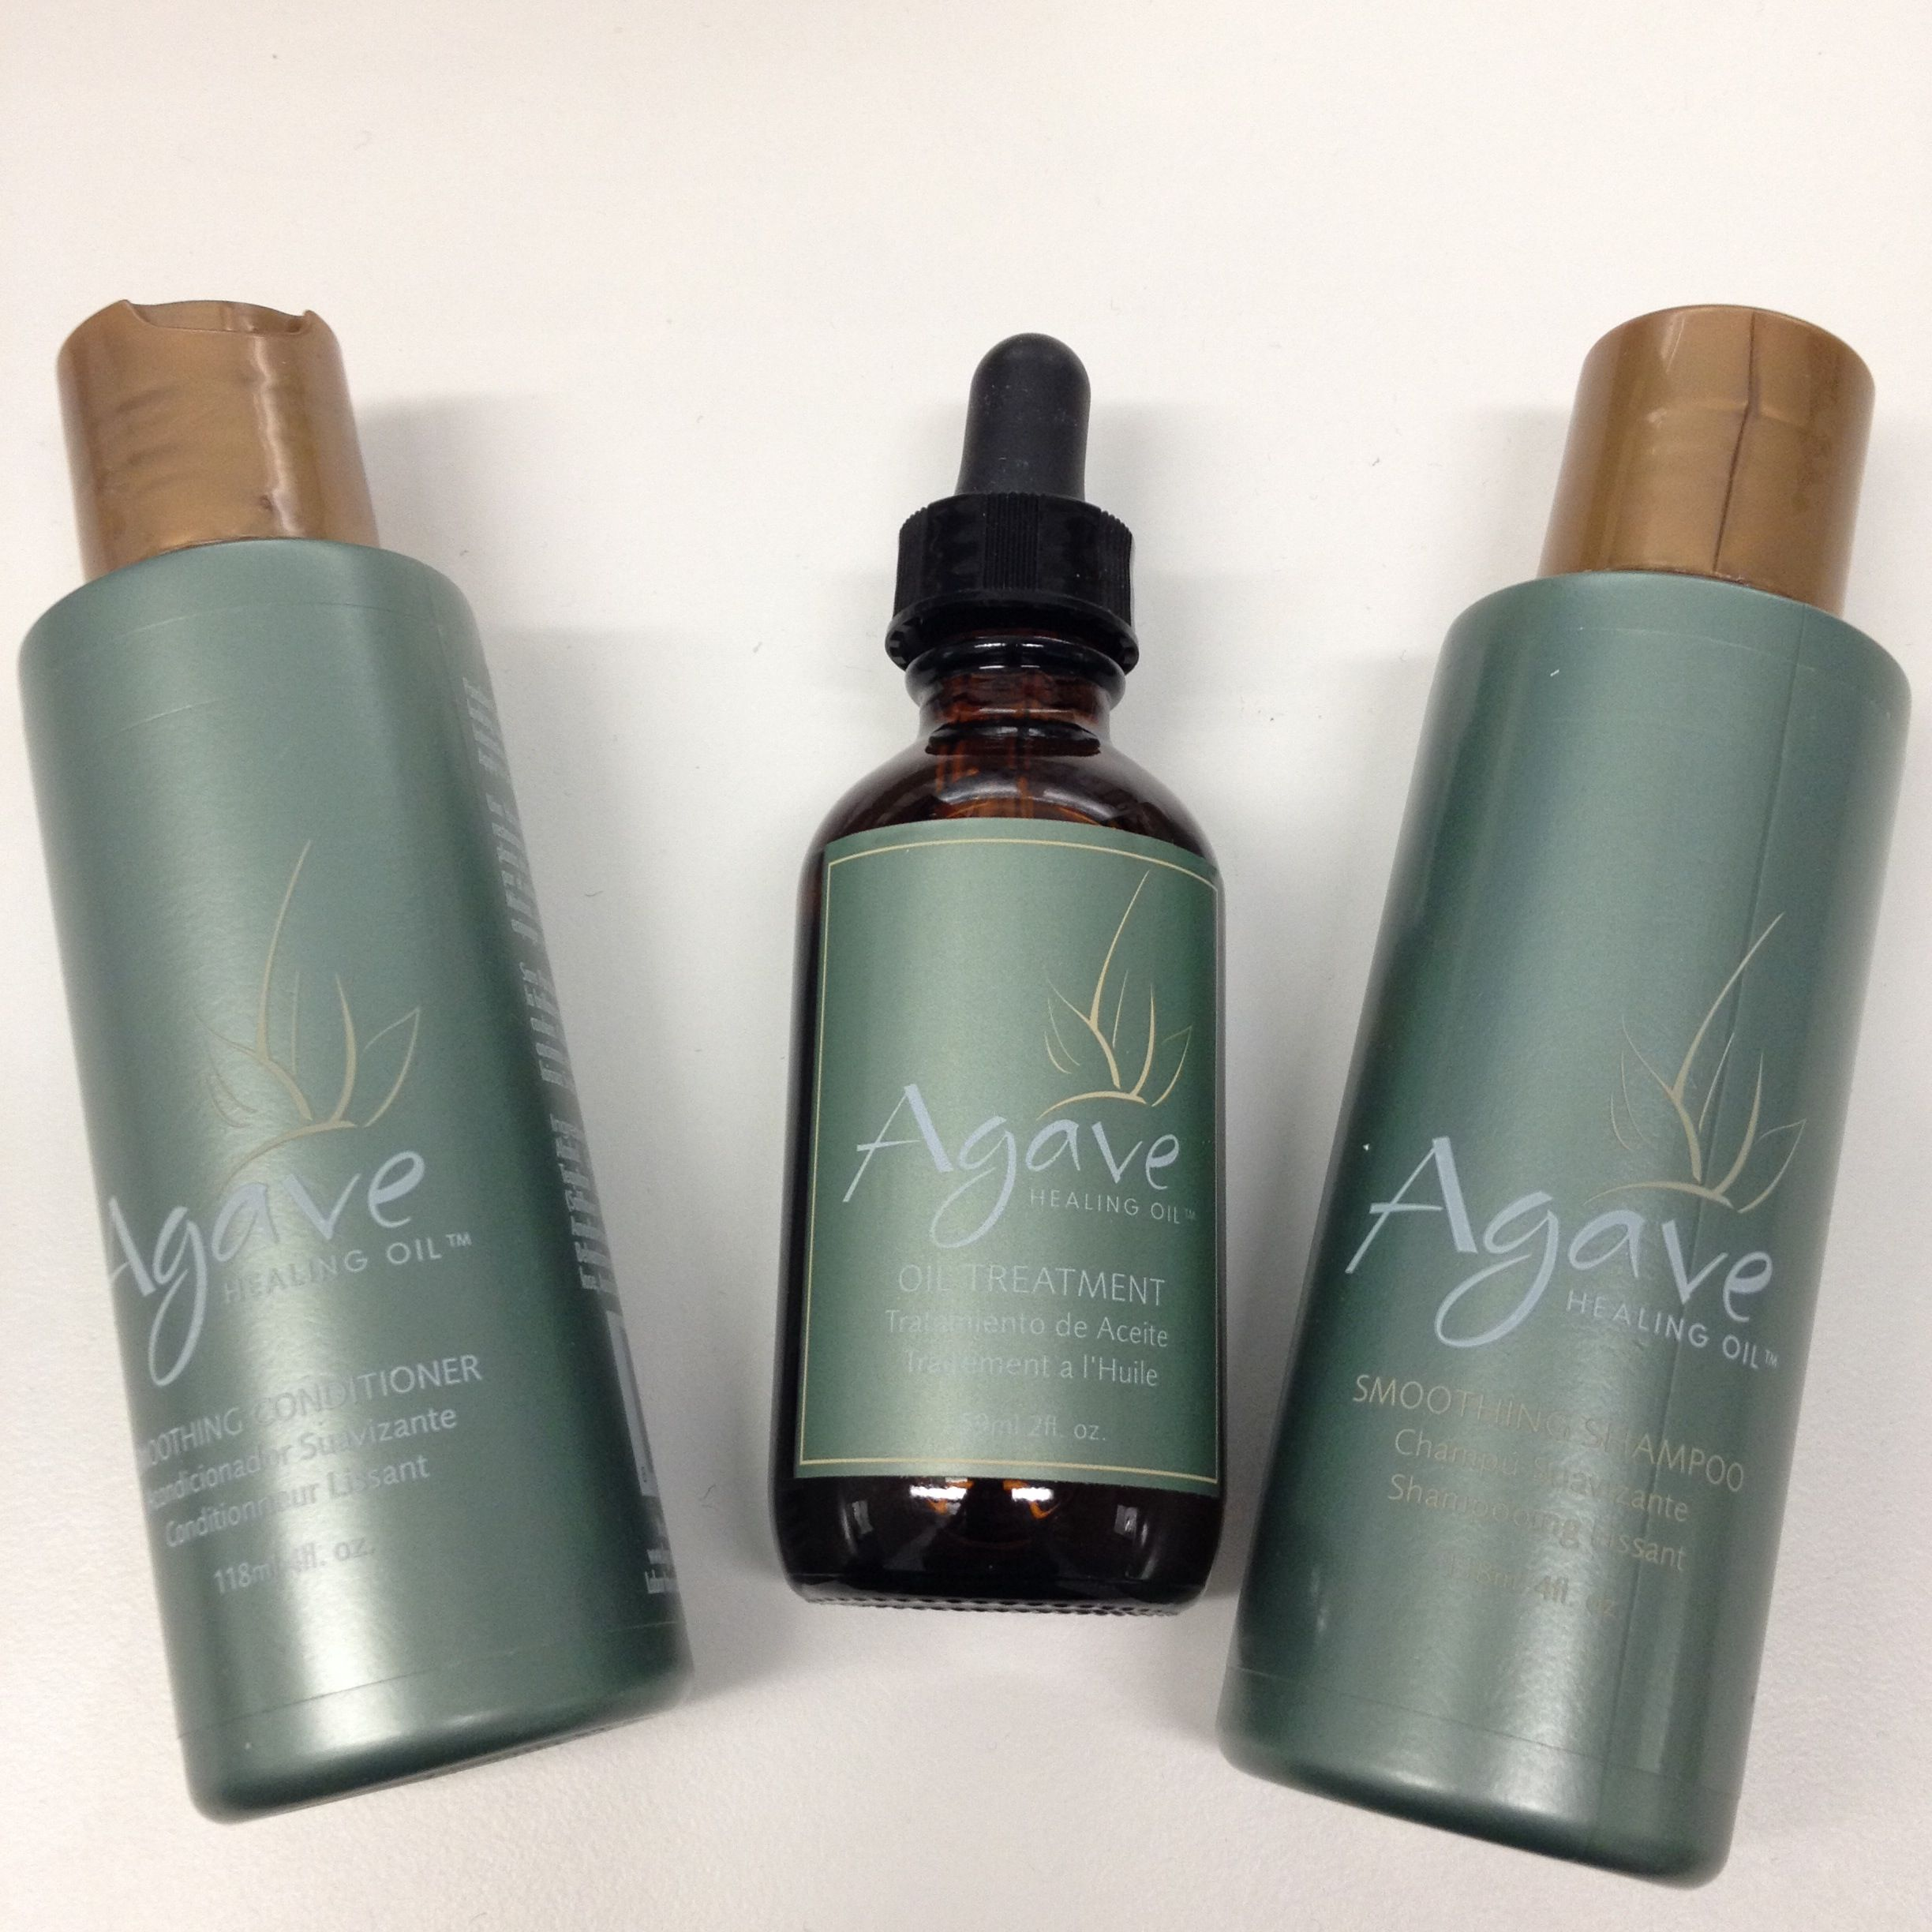 Agave one of the best products for dry.damaged hair smells